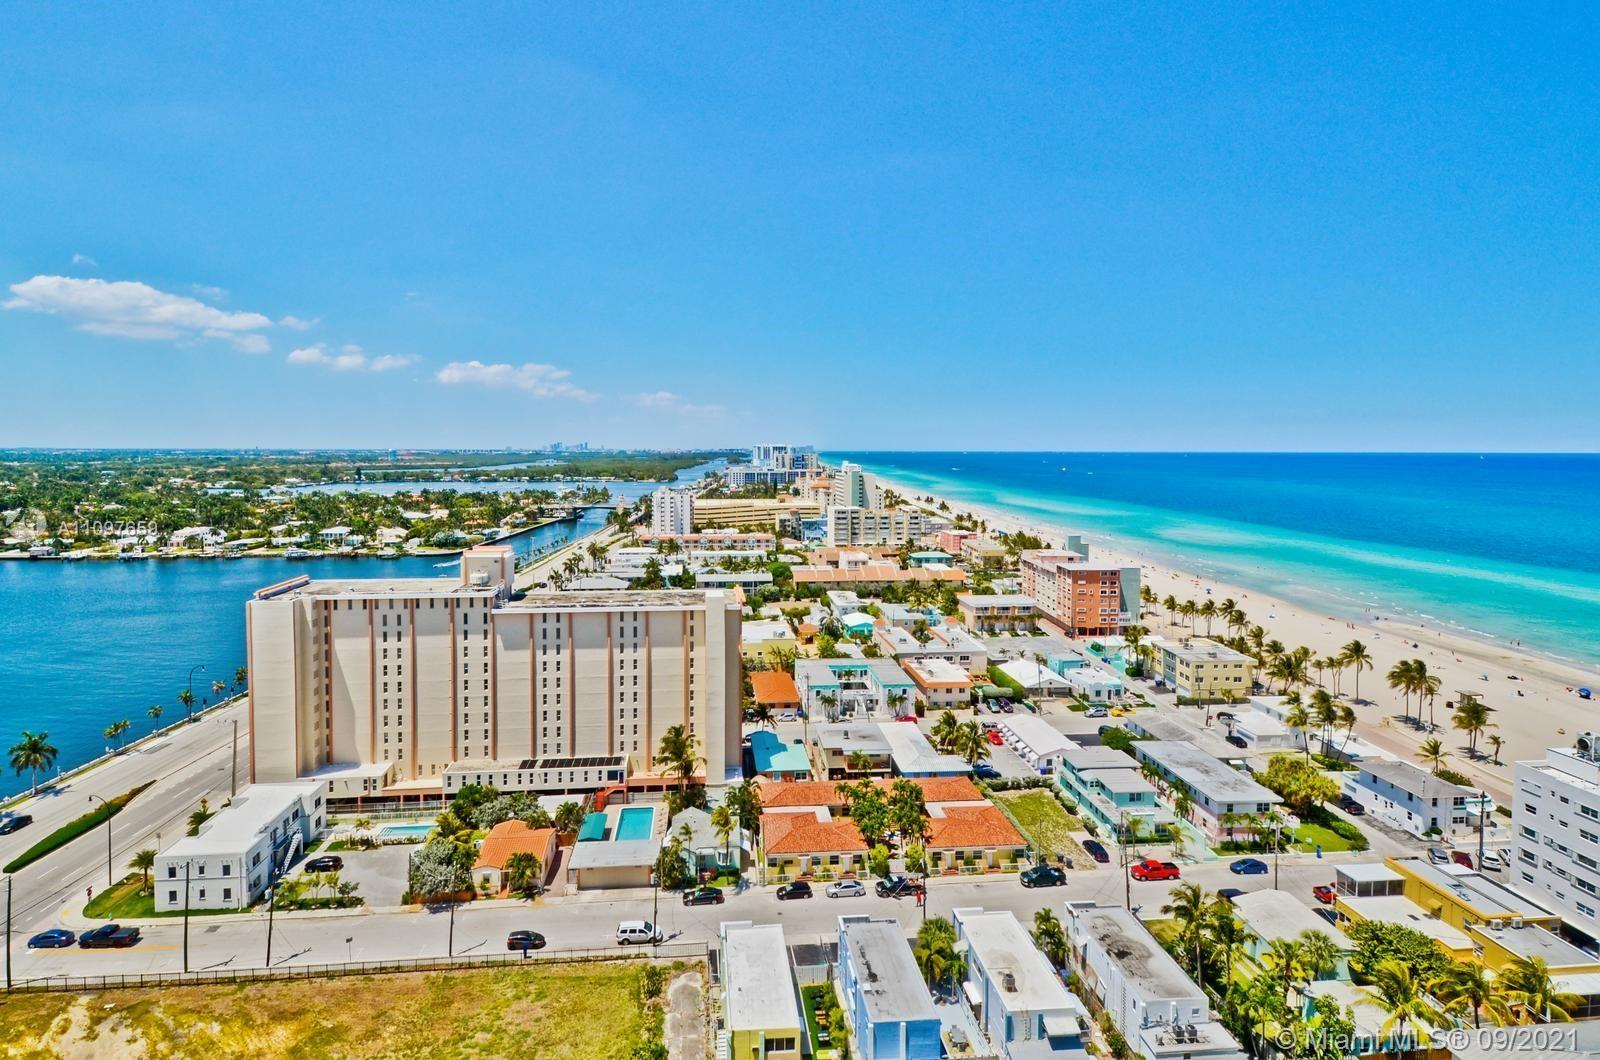 Incredible panoramic water views of ocean + intracoastal, unobstructed all the way to Ft. Lauderdale